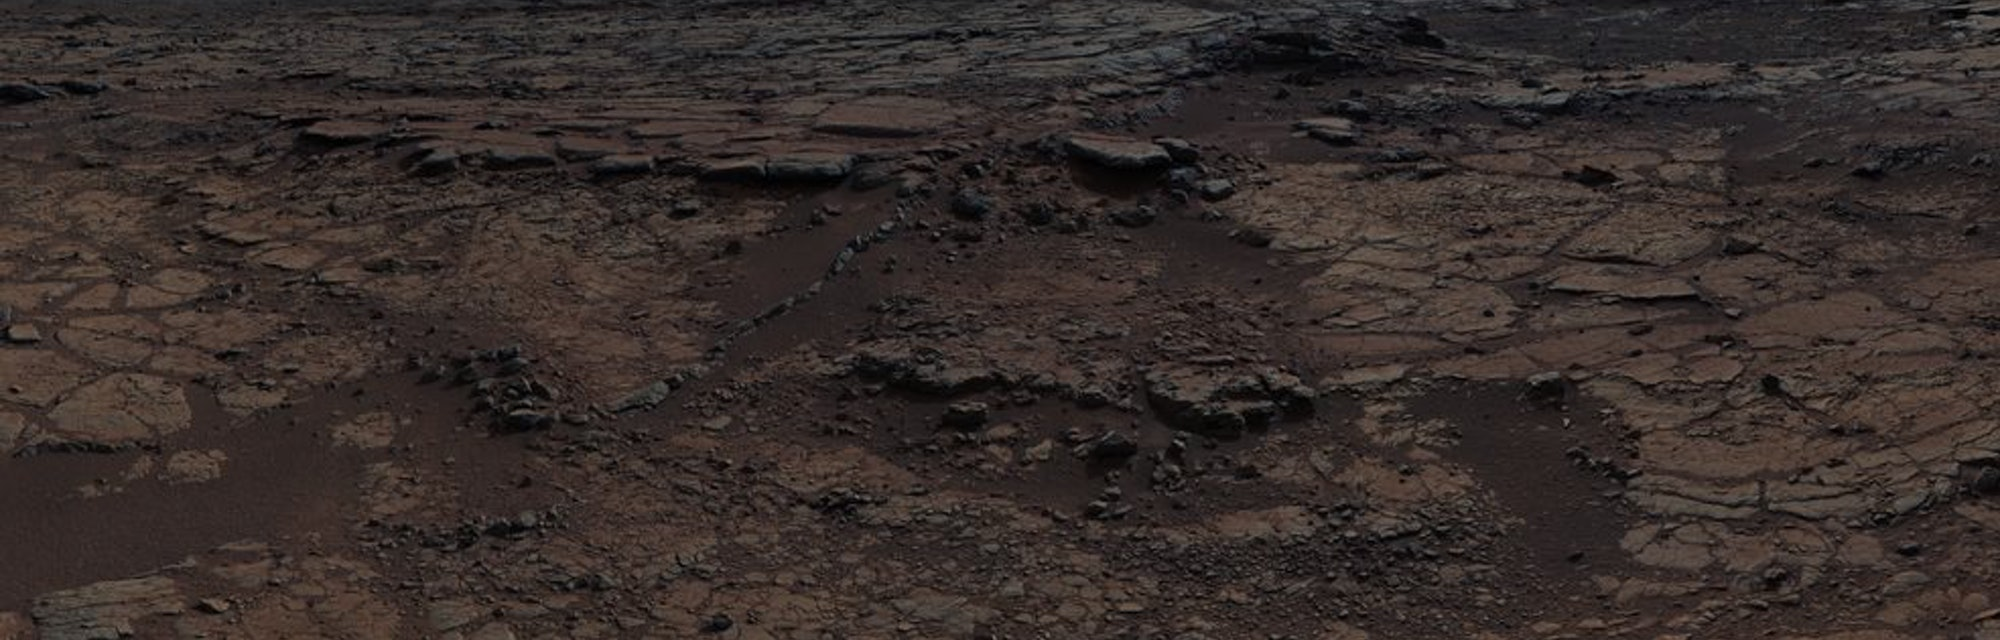 The surface of Mars as seen from the Curiosity rover